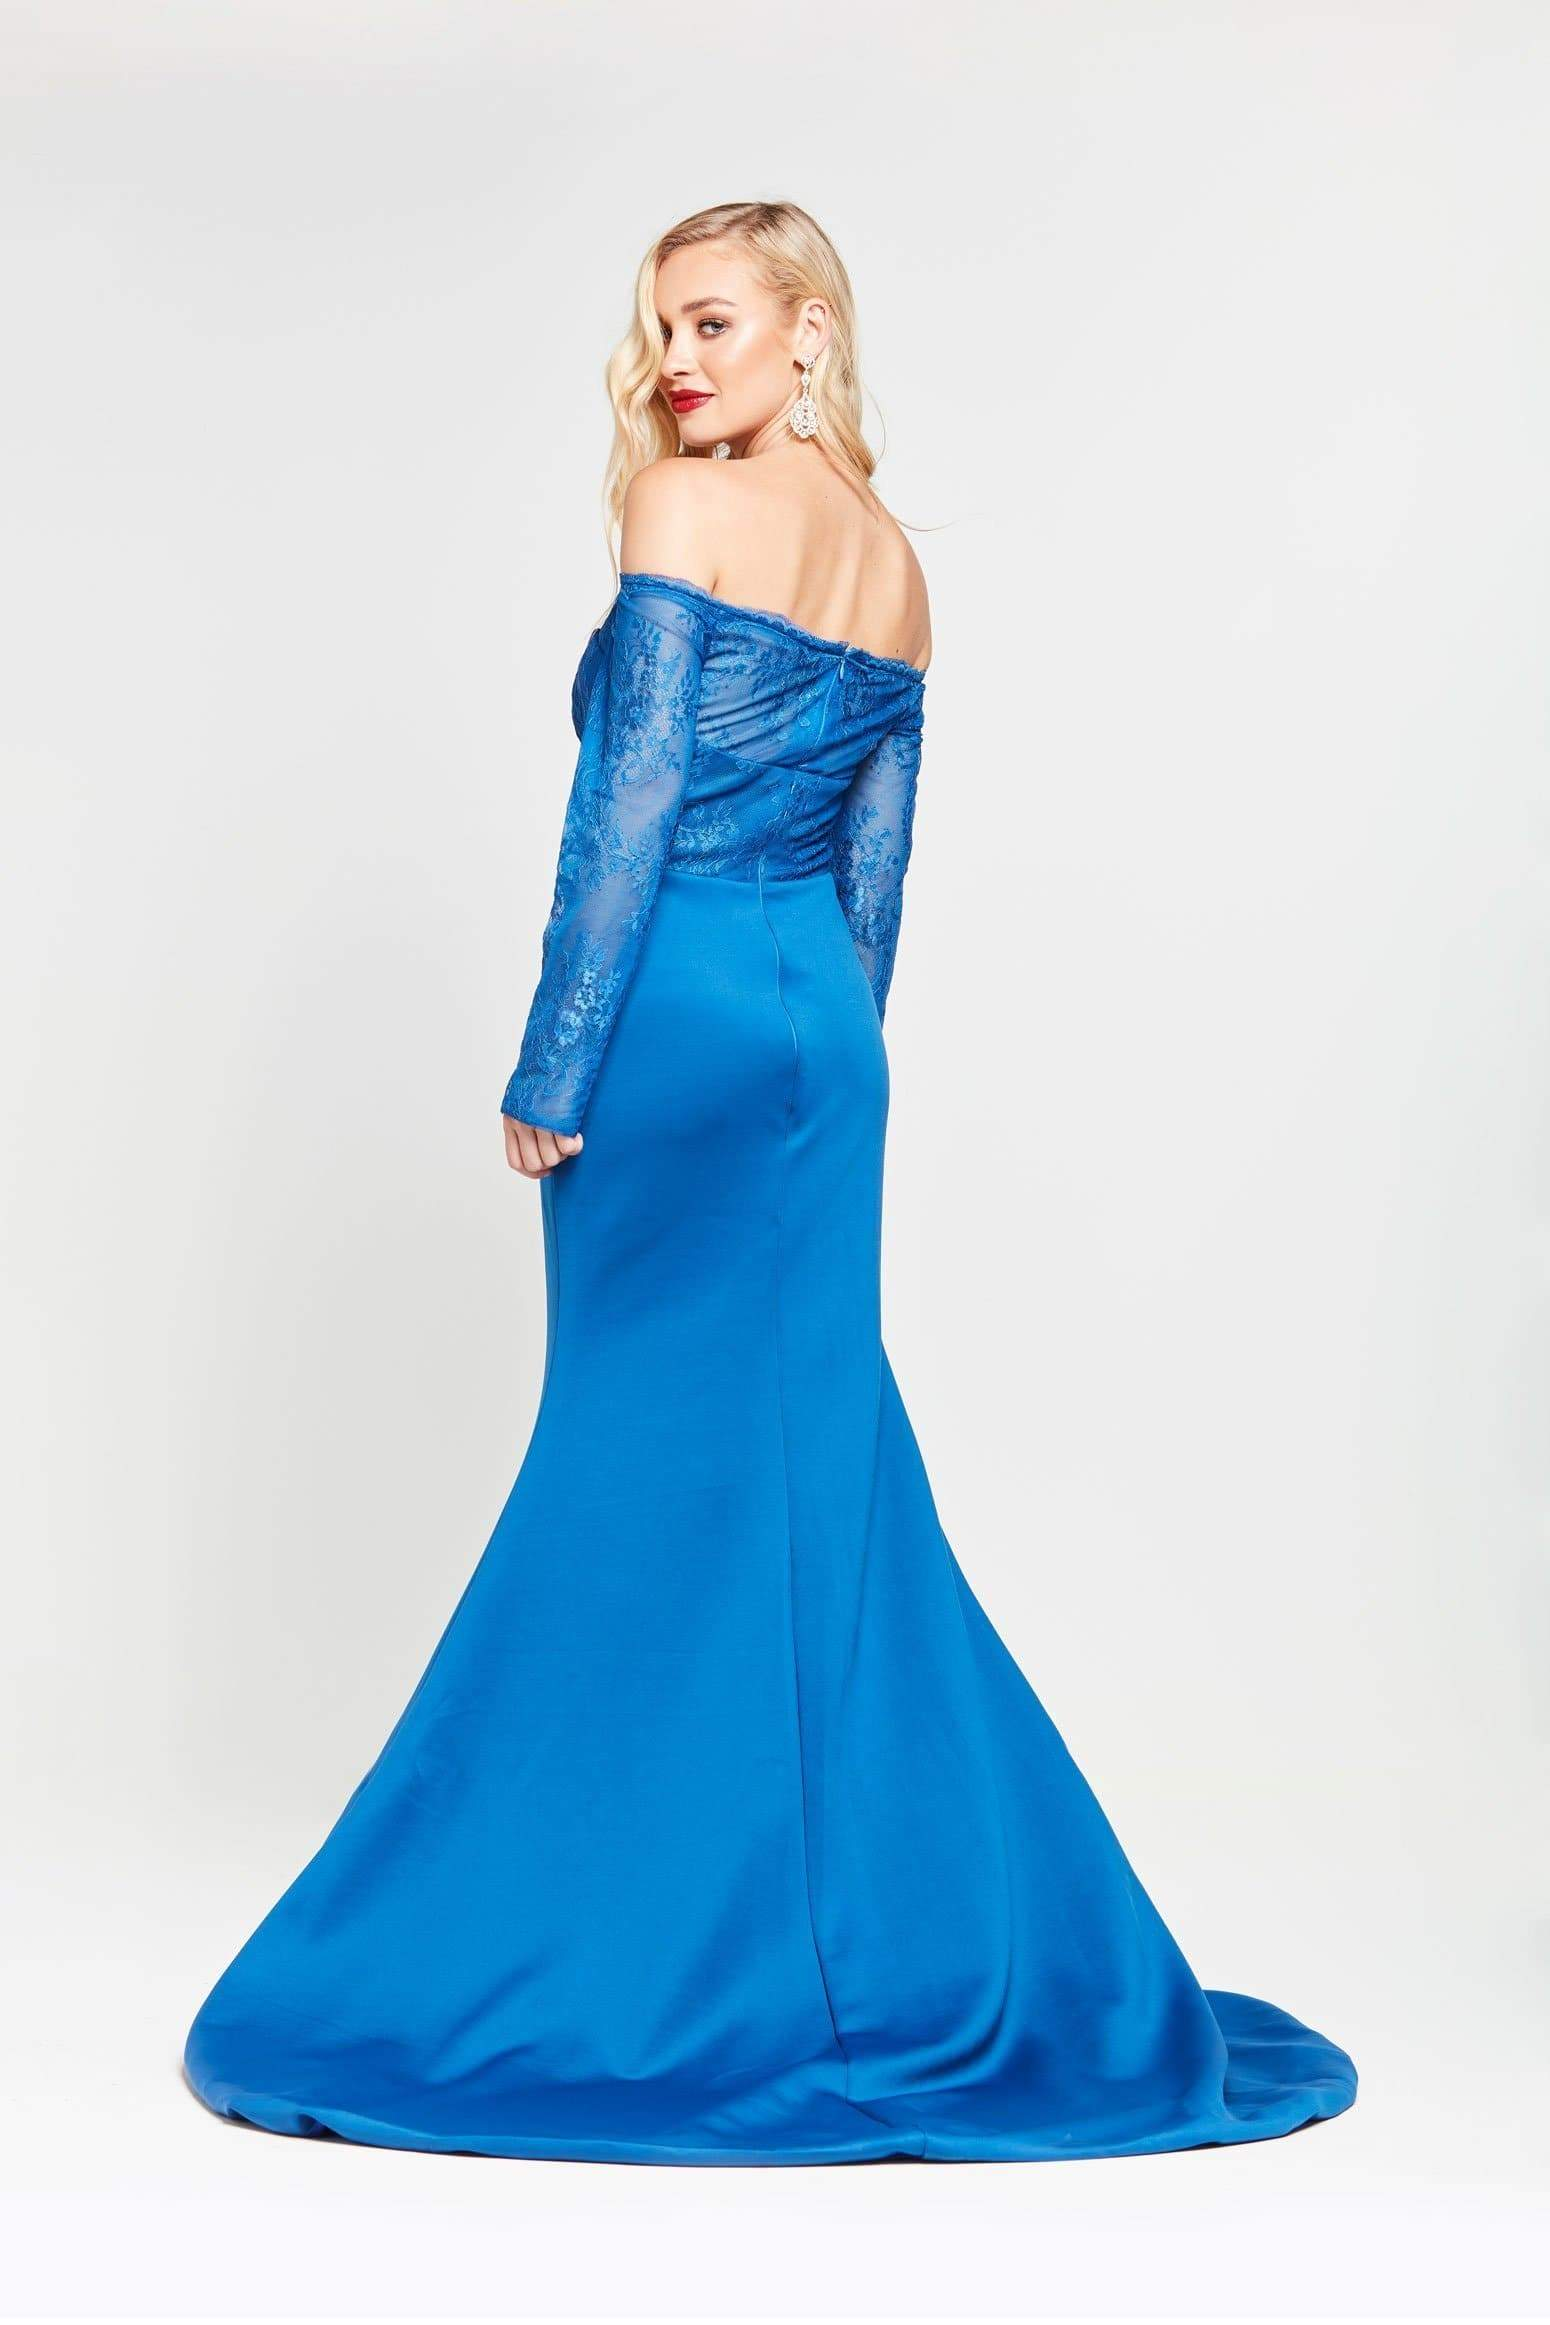 A&N Gina - Blue Jersey Lace Off Shoulder Gown with Long Sleeves